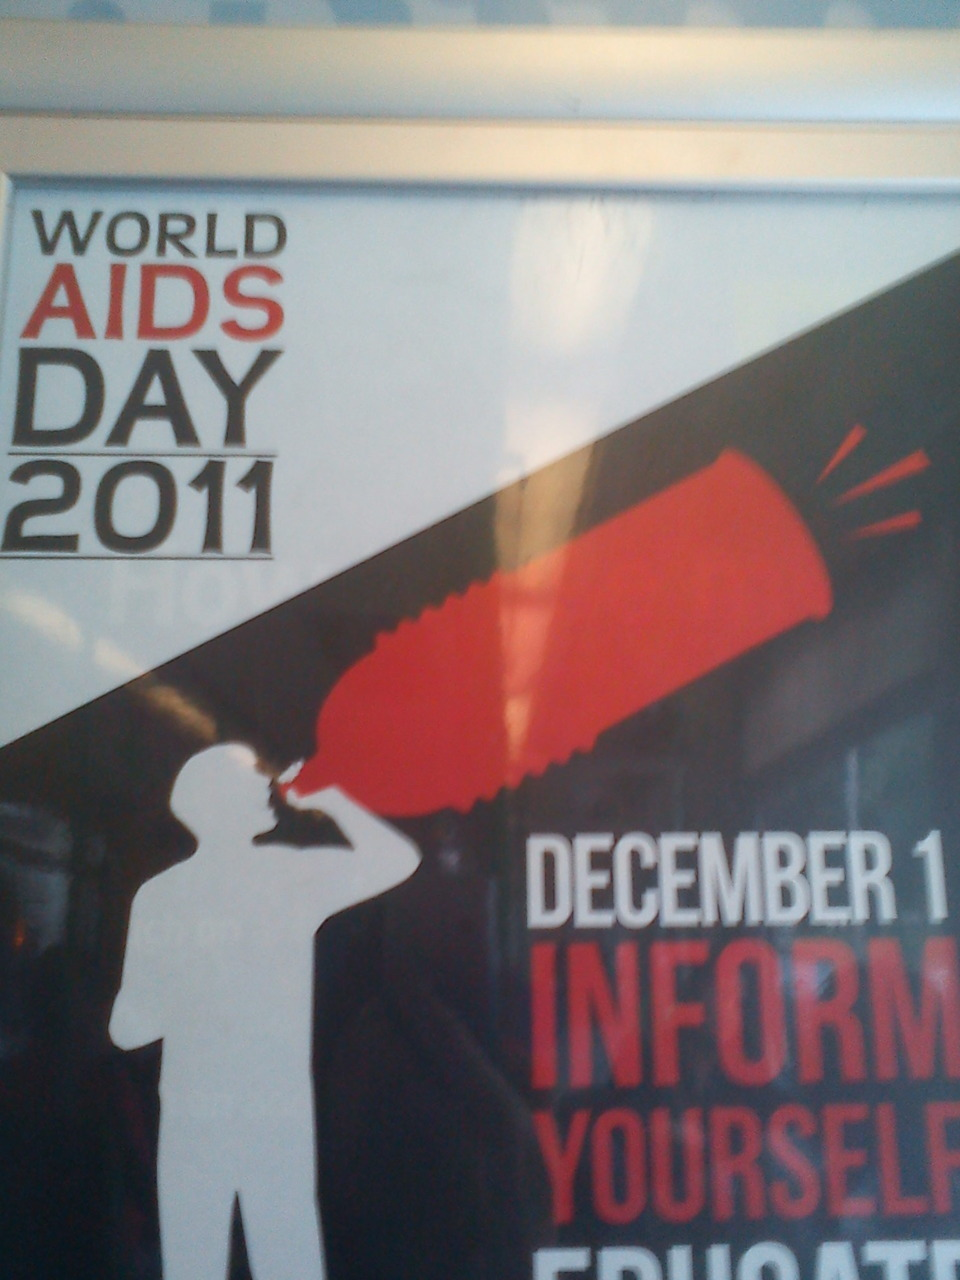 wtf lol massive world aids day condom. thats too big